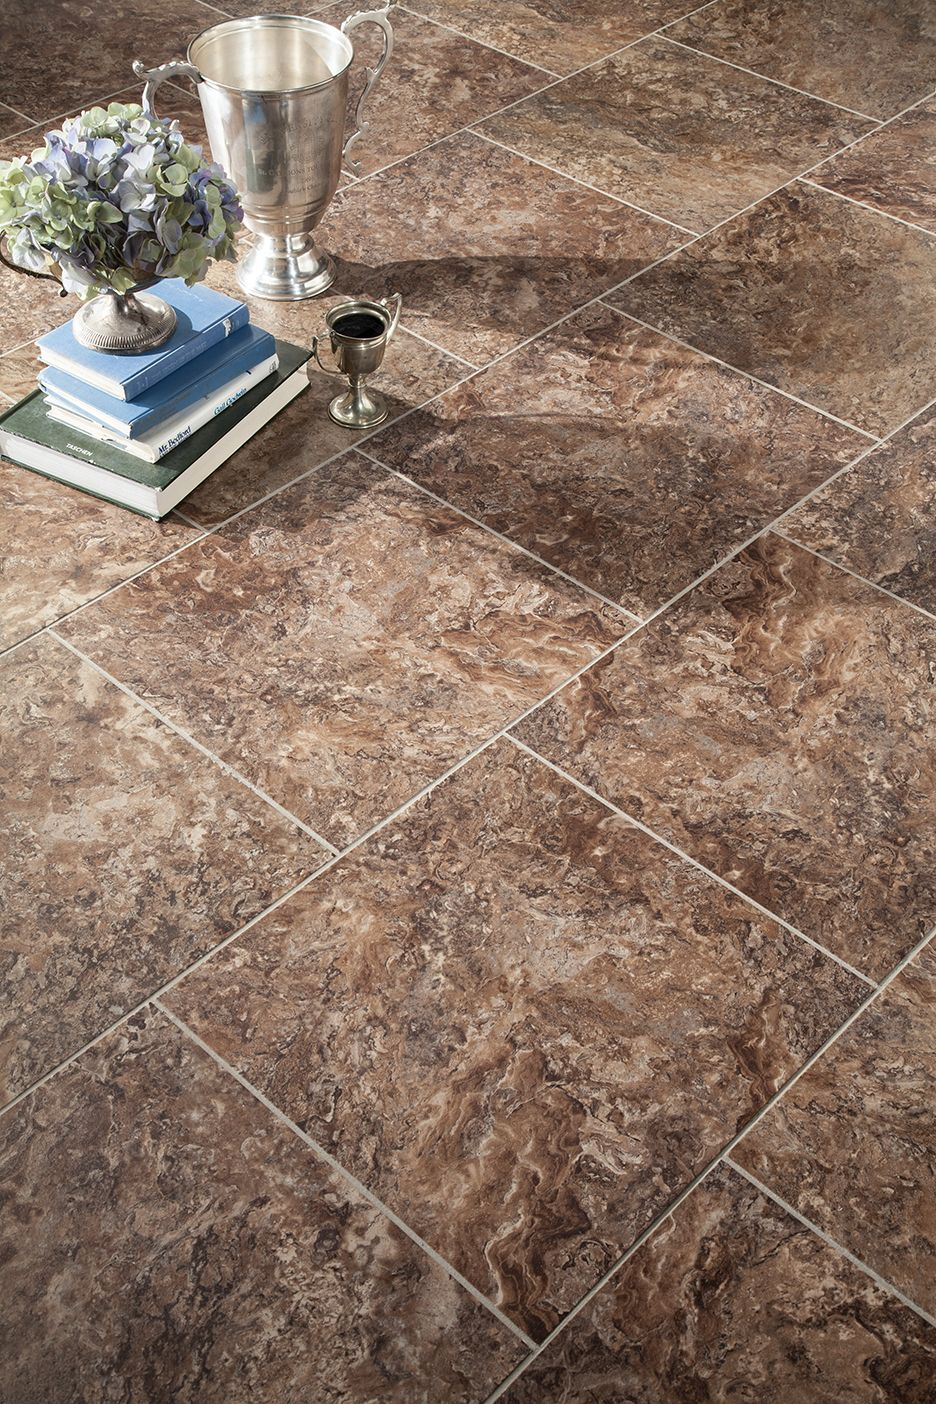 Stainmaster Stainmaster 18 In X 18 In Groutable Corsica Cavern Peel And Stick Luxury Vinyl Tile Lowes Com Vinyl Tile Stainmaster Luxury Vinyl Luxury Vinyl